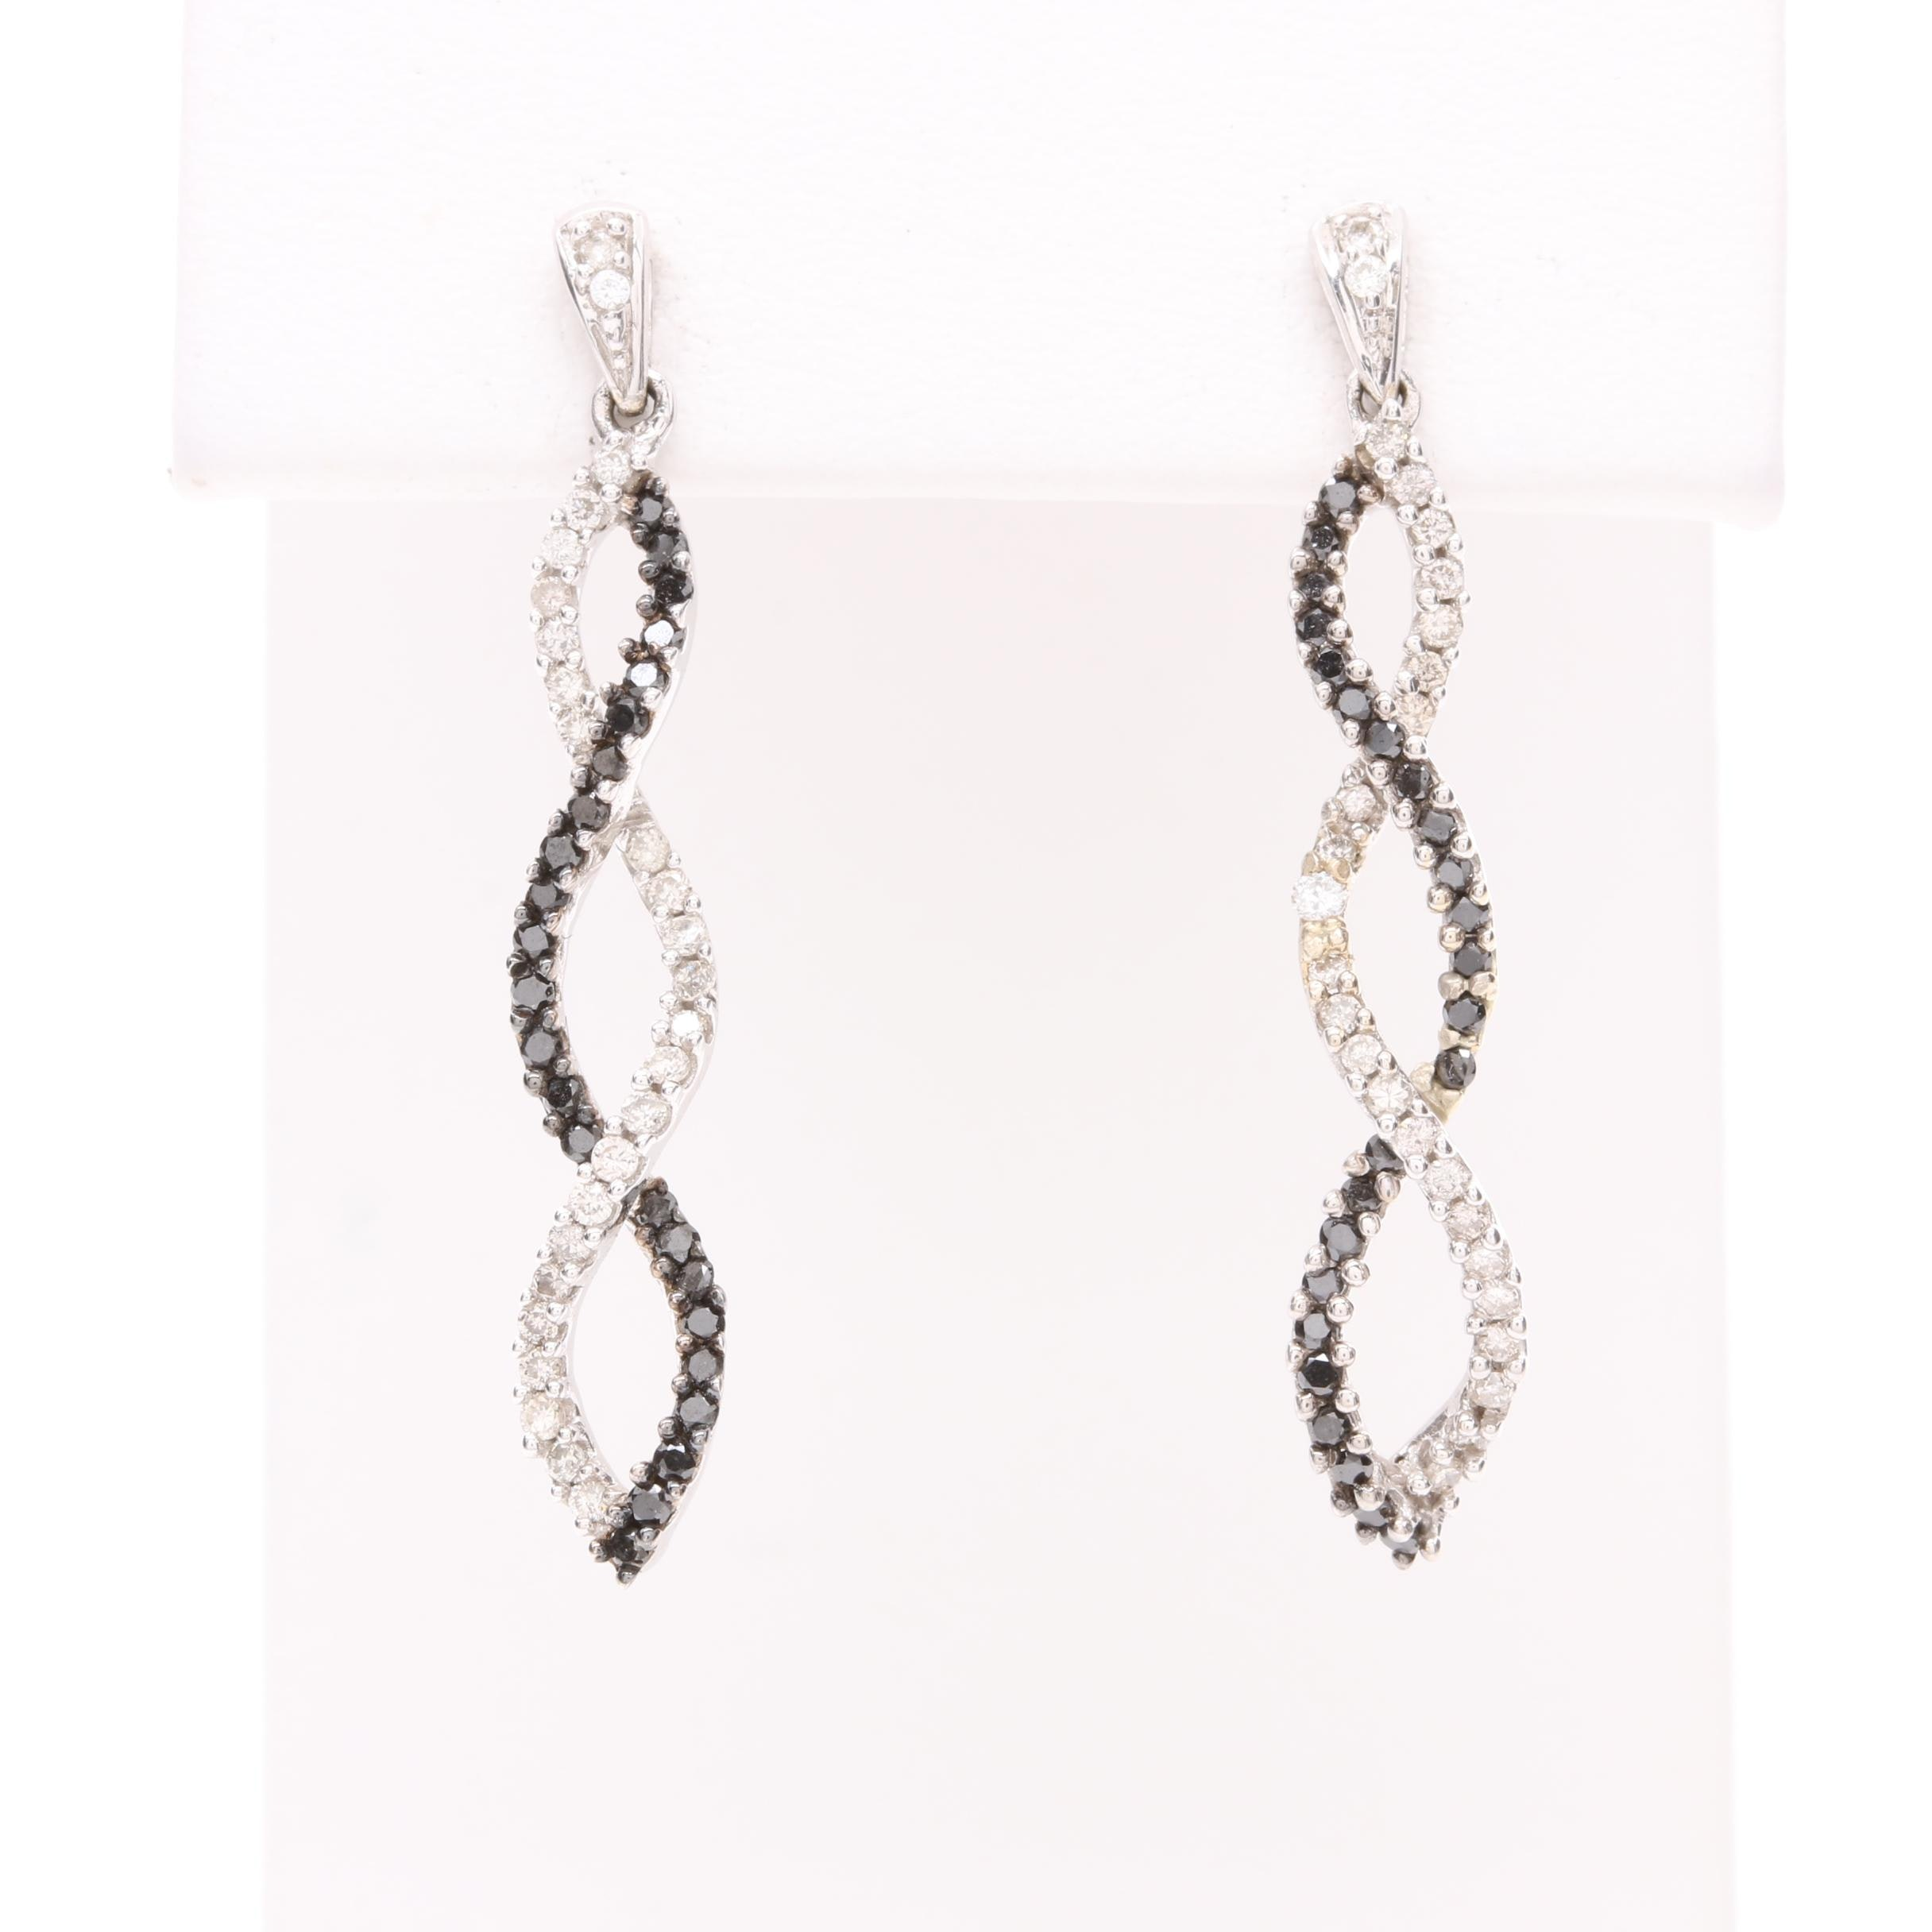 14K White Gold Diamond Earrings with Black Diamond Accents